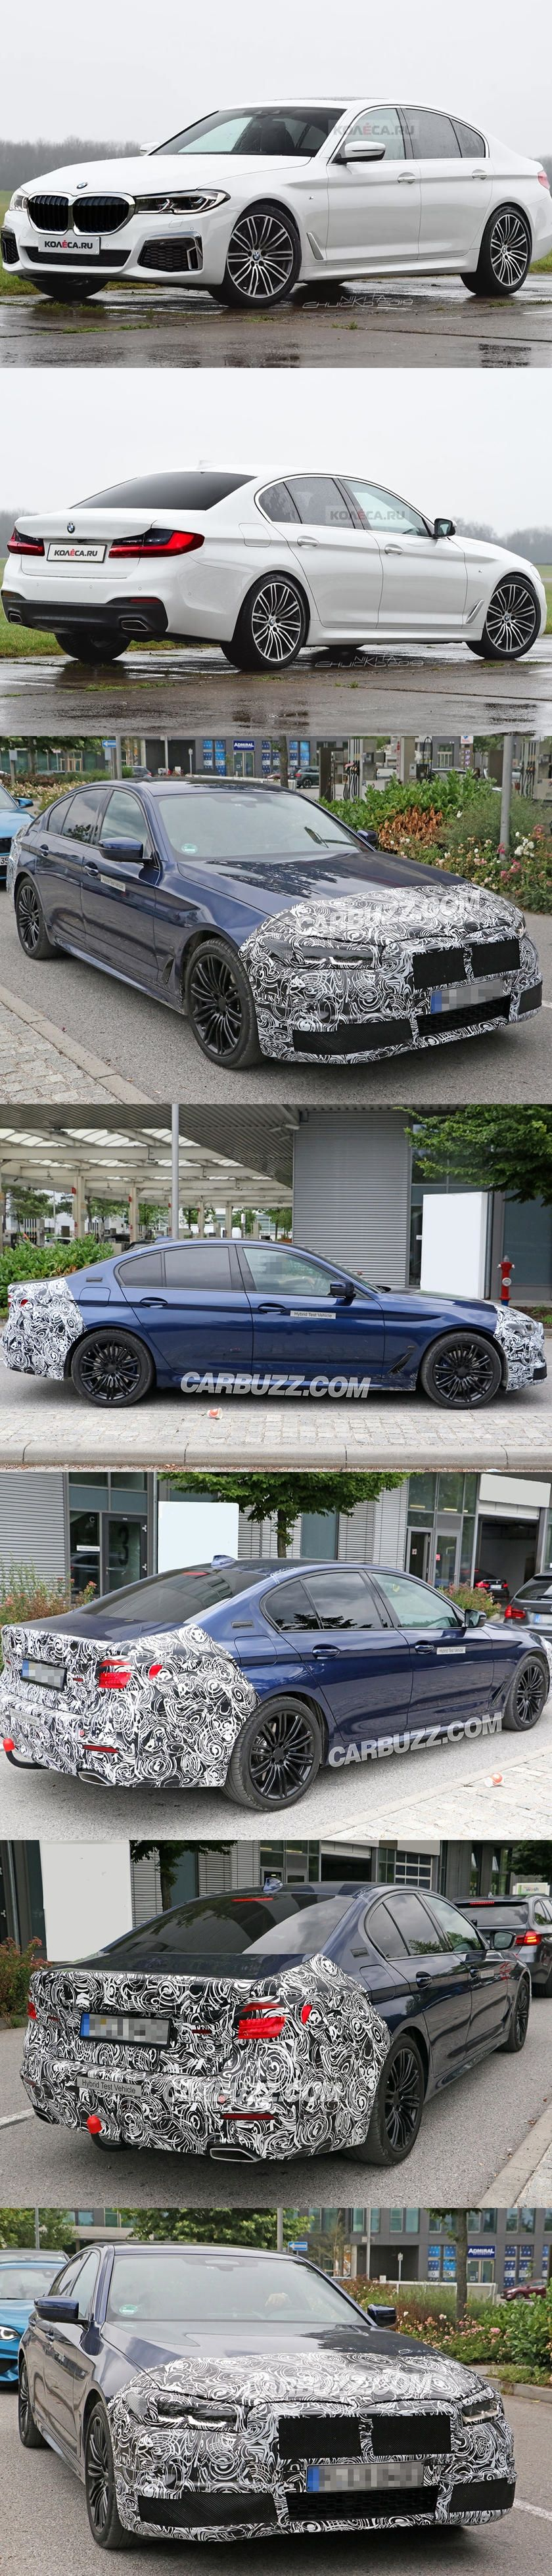 Expect The 2020 Bmw 5 Series Facelift To Look Like This Bmw 5